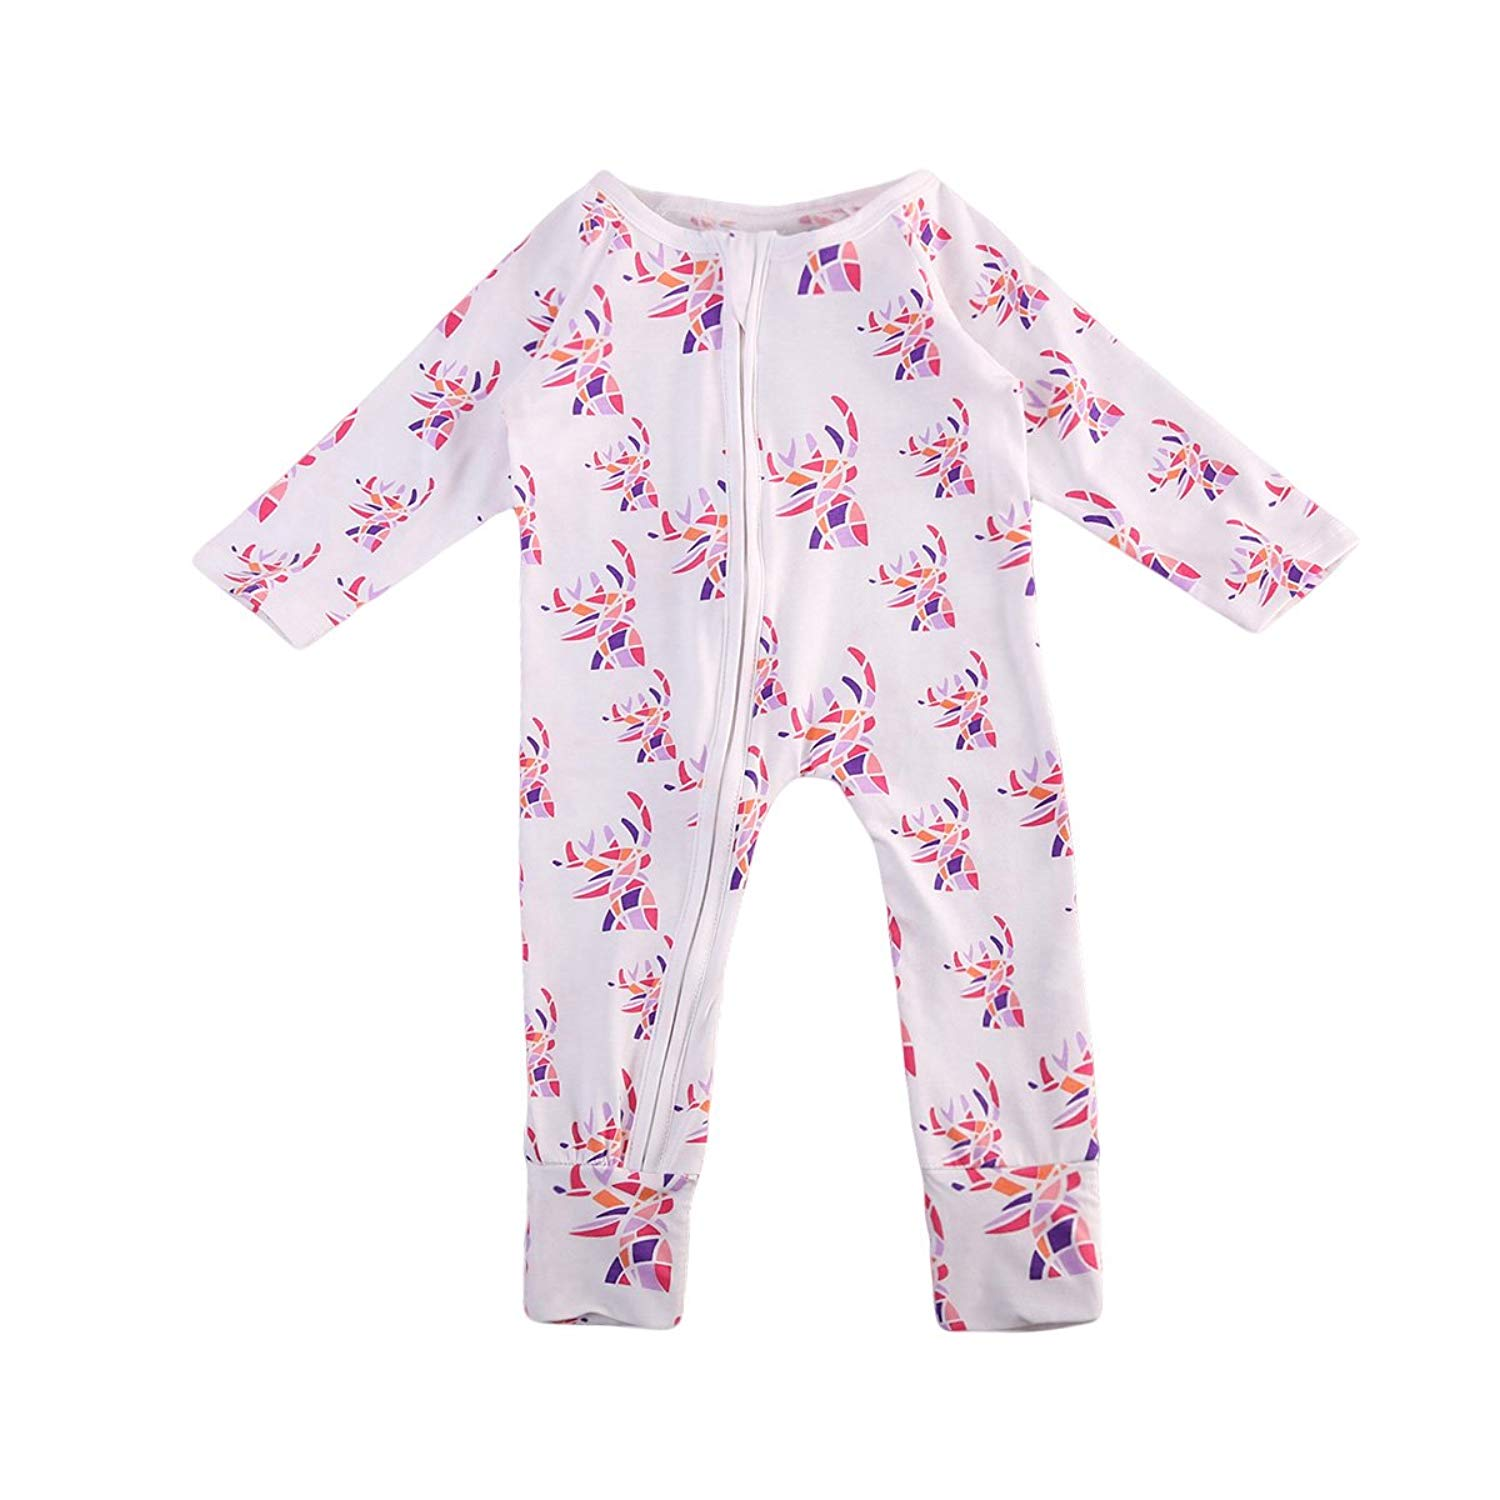 Cheap Baby Zipper Pajamas, find Baby Zipper Pajamas deals on line